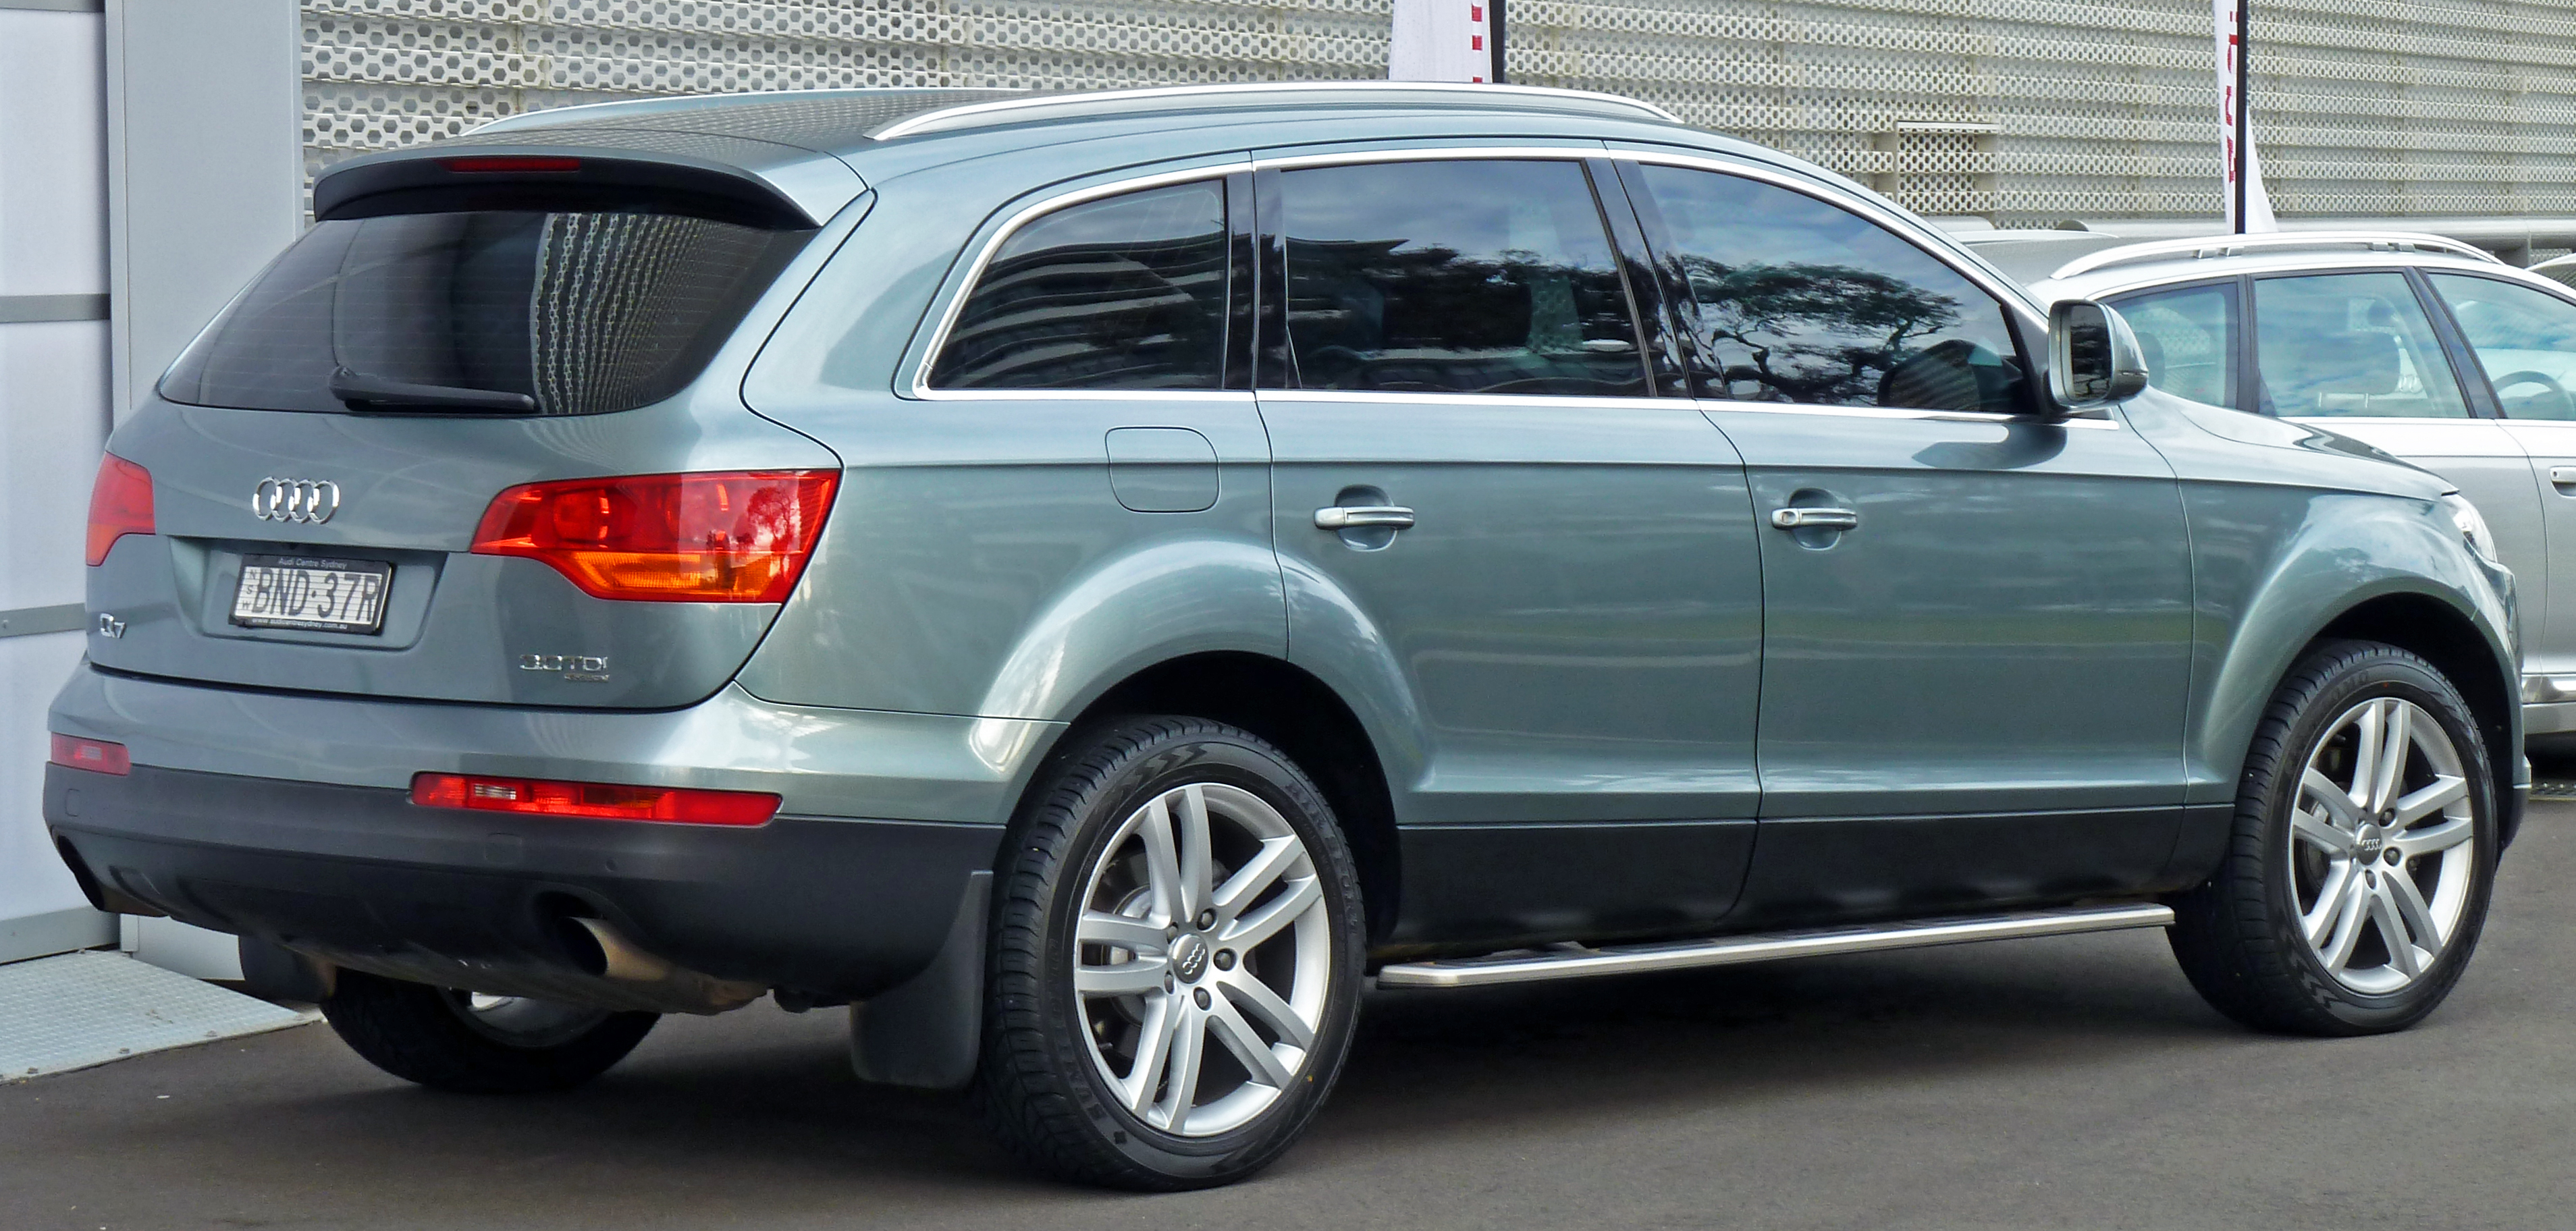 Audi Q7 30T and Volvo XC90 T6 SUV comparison Which is